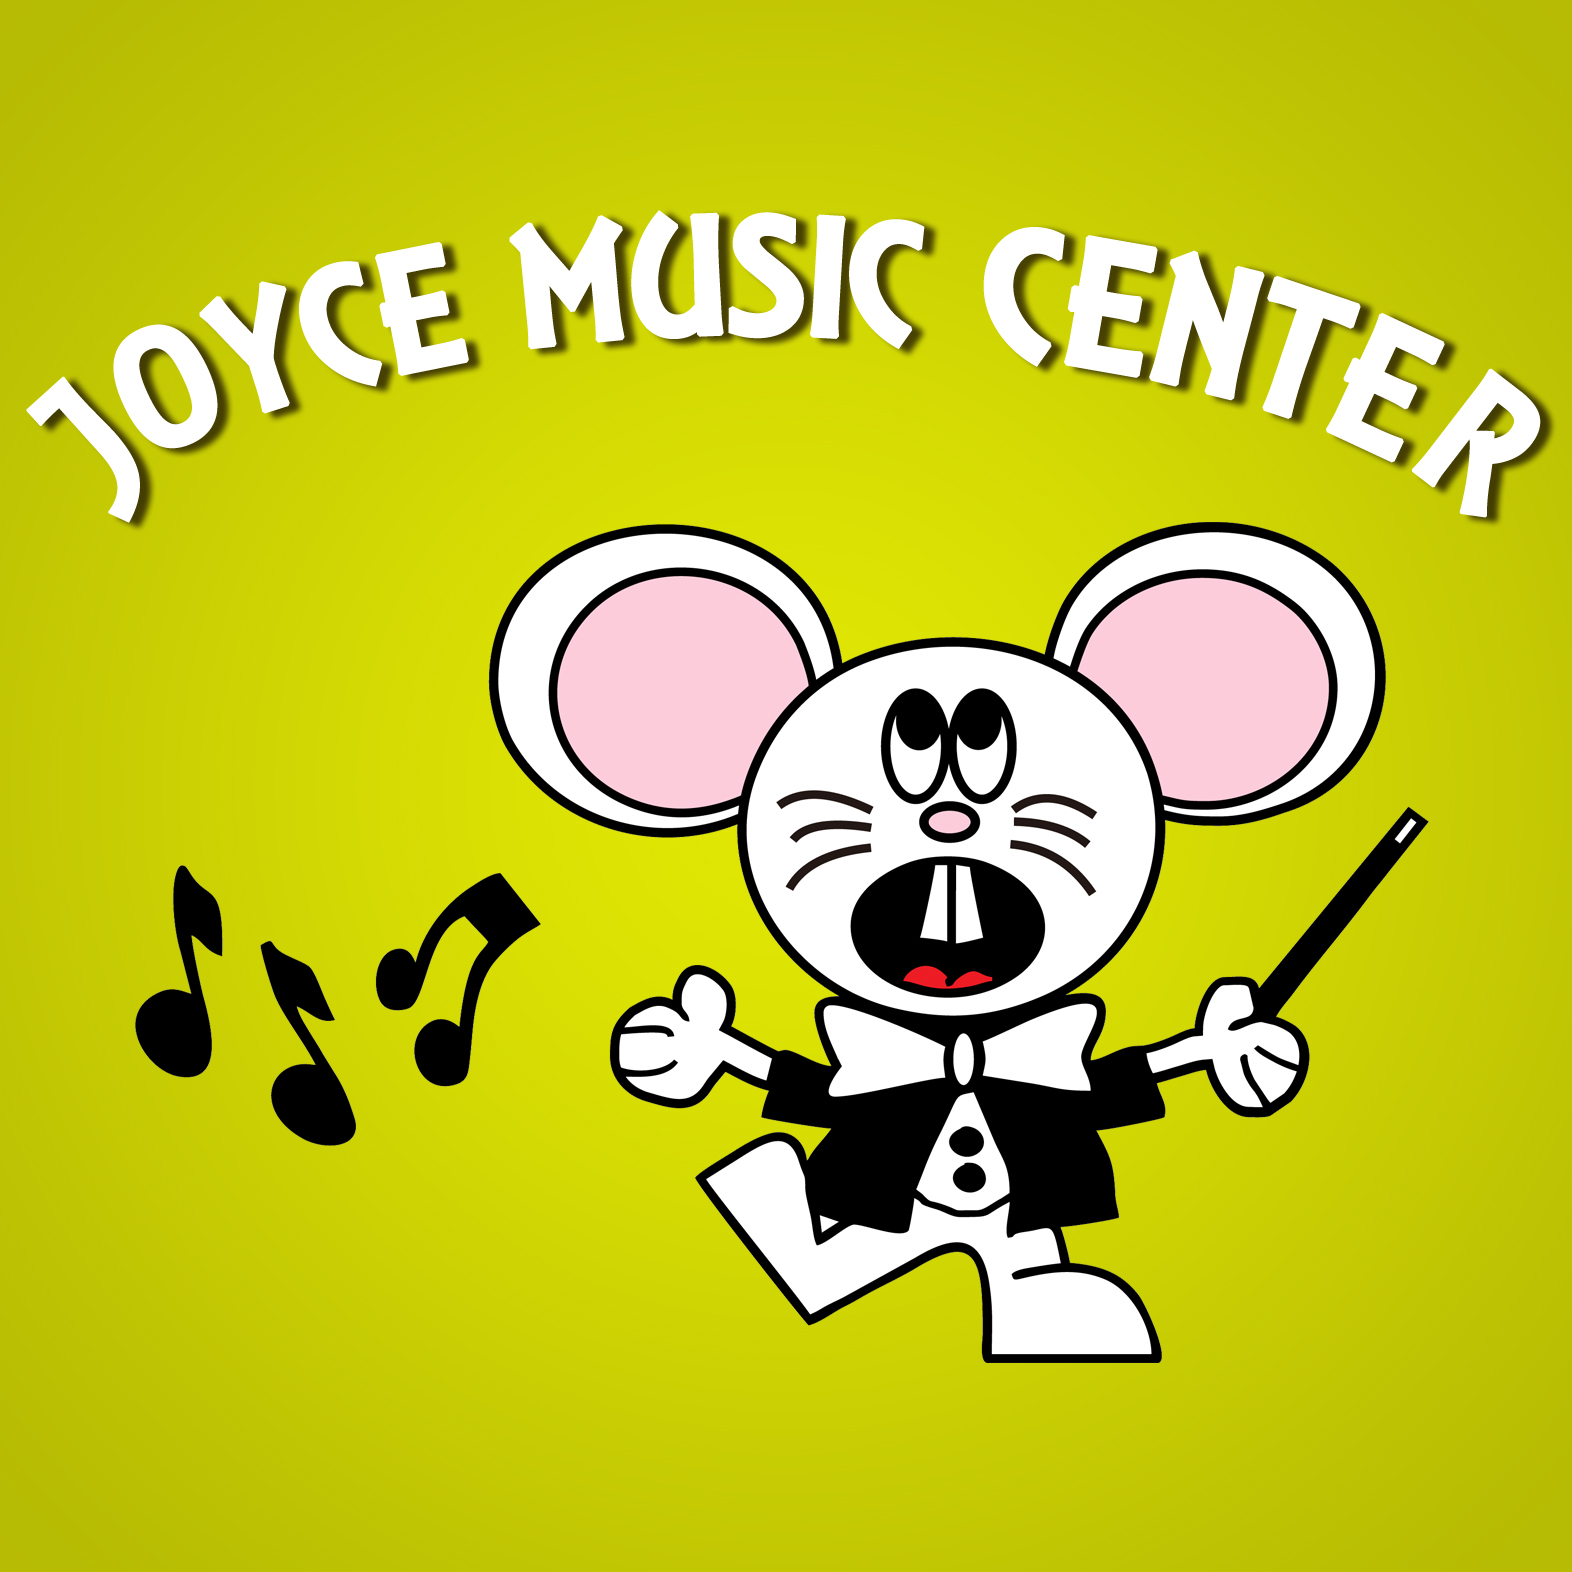 Joyce Music Center